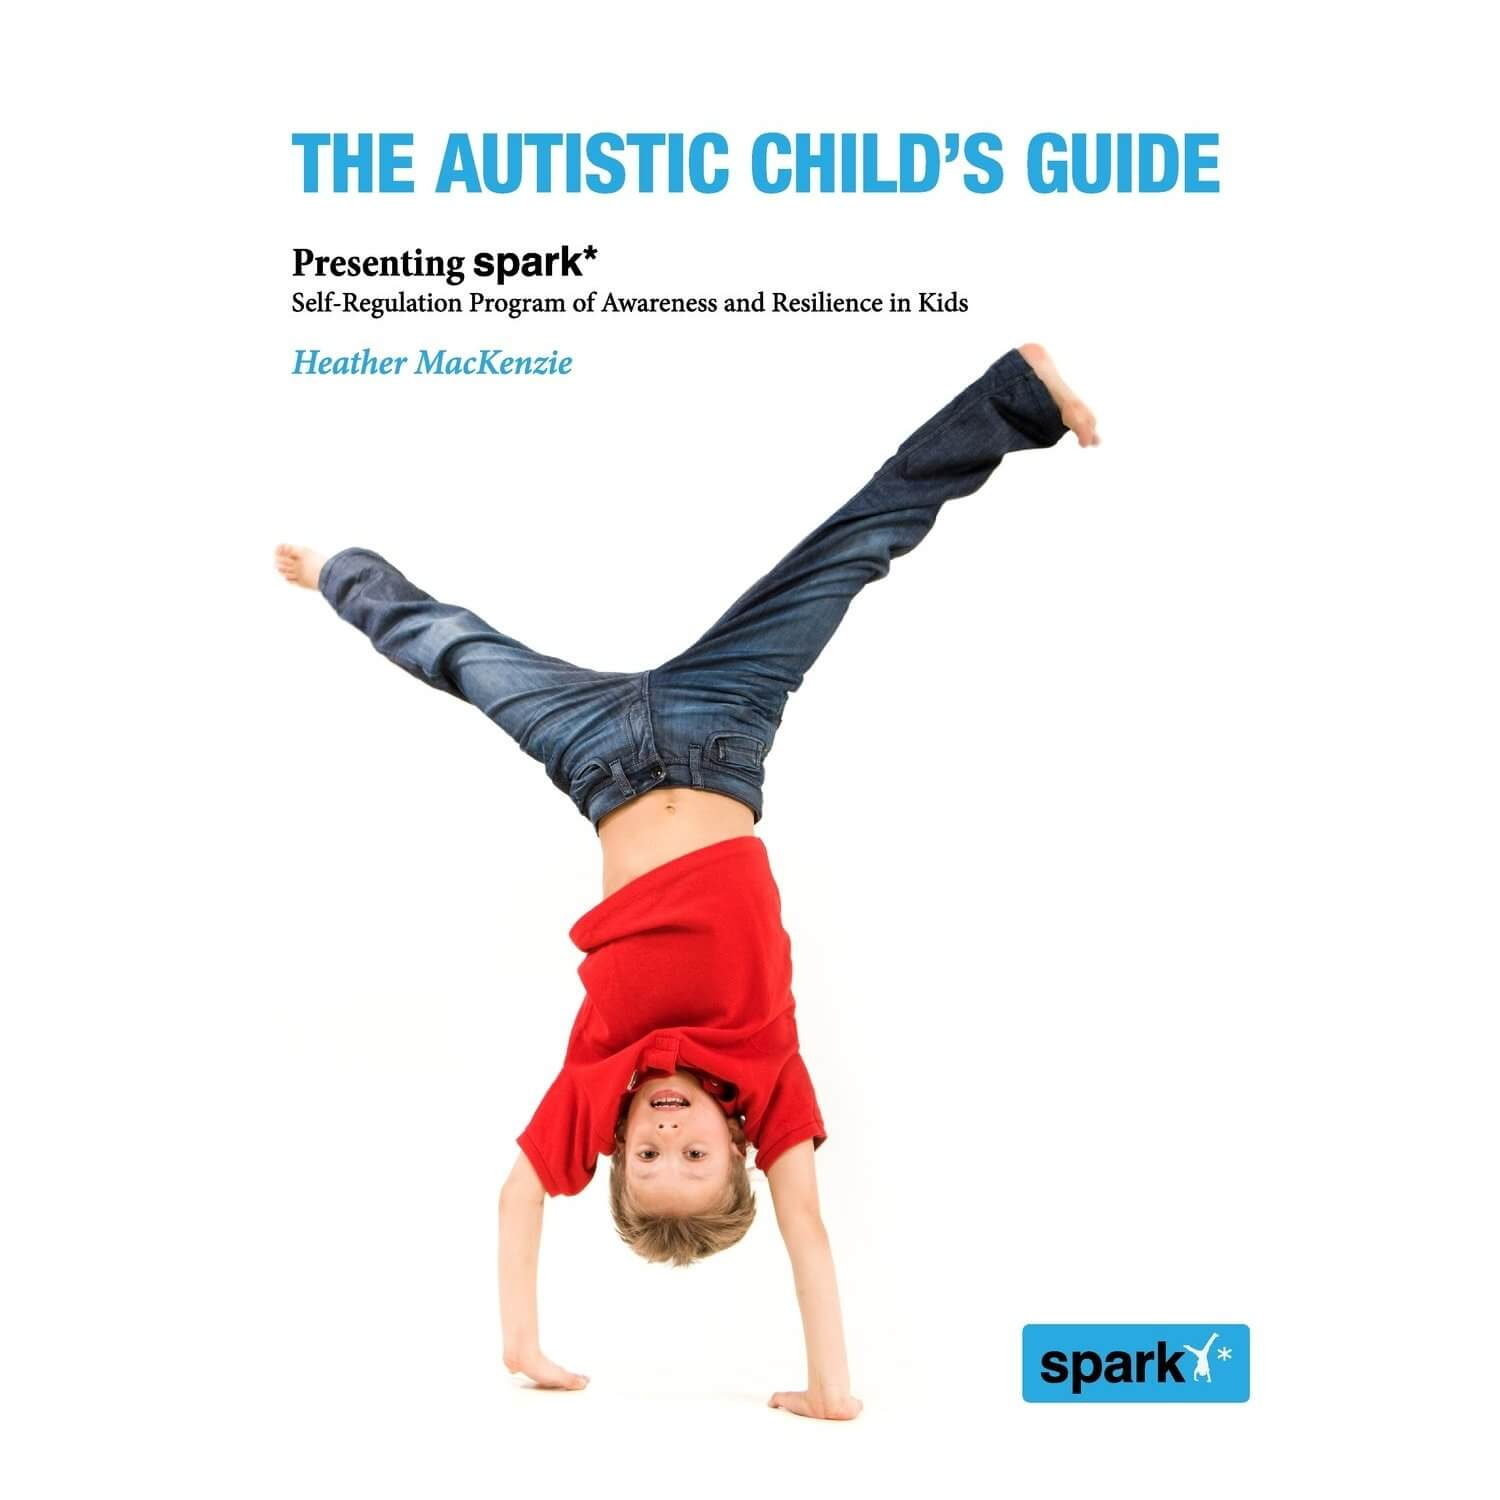 The Autistic Child's Guide presents spark*, the Self-regulation Program of Awareness and Resilience in Kids